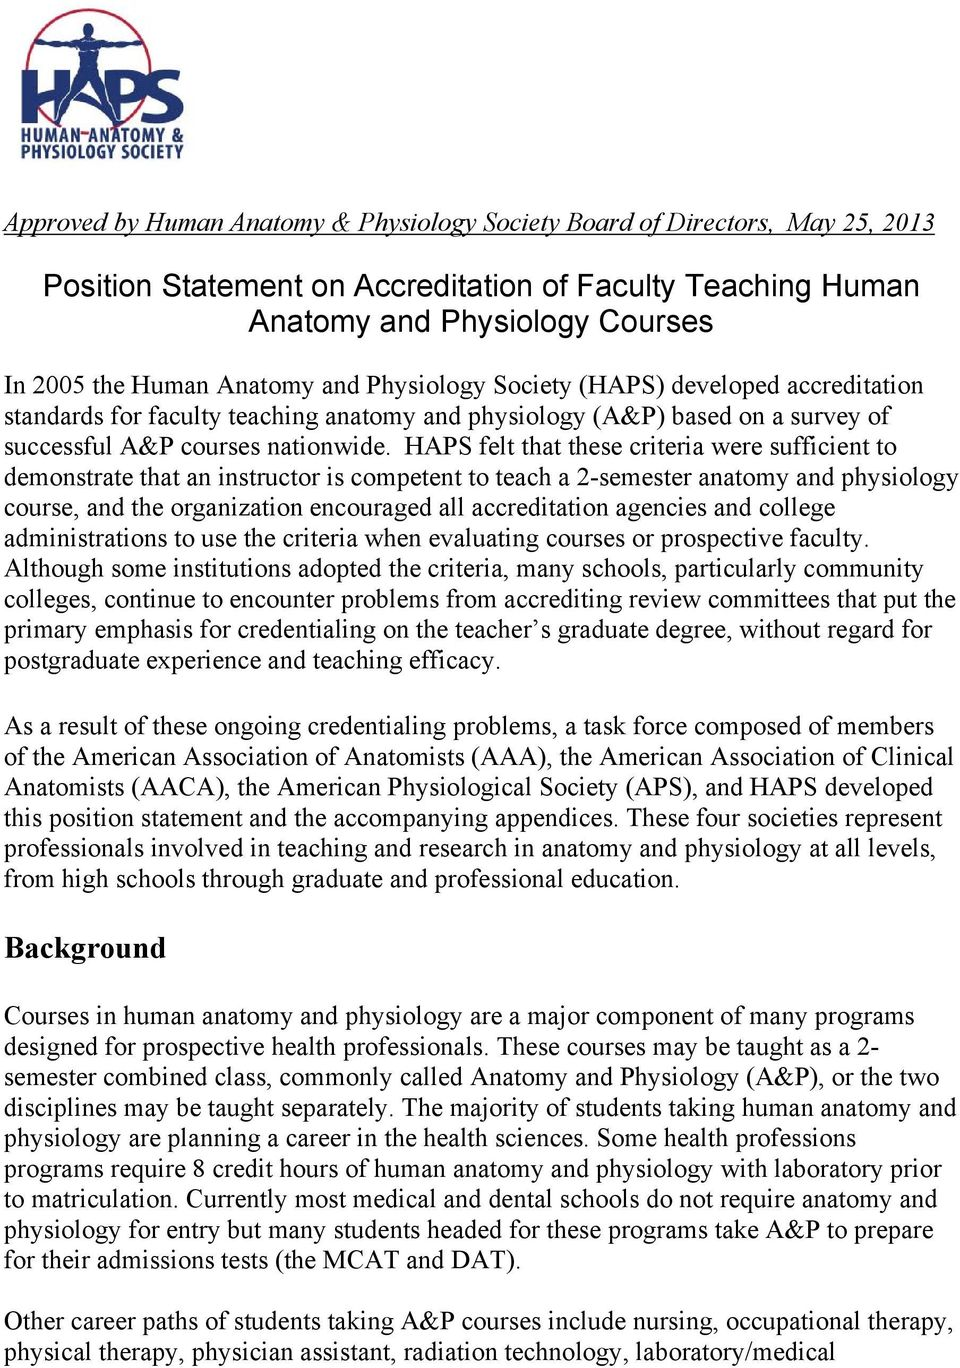 HAPS felt that these criteria were sufficient to demonstrate that an instructor is competent to teach a 2-semester anatomy and physiology course, and the organization encouraged all accreditation